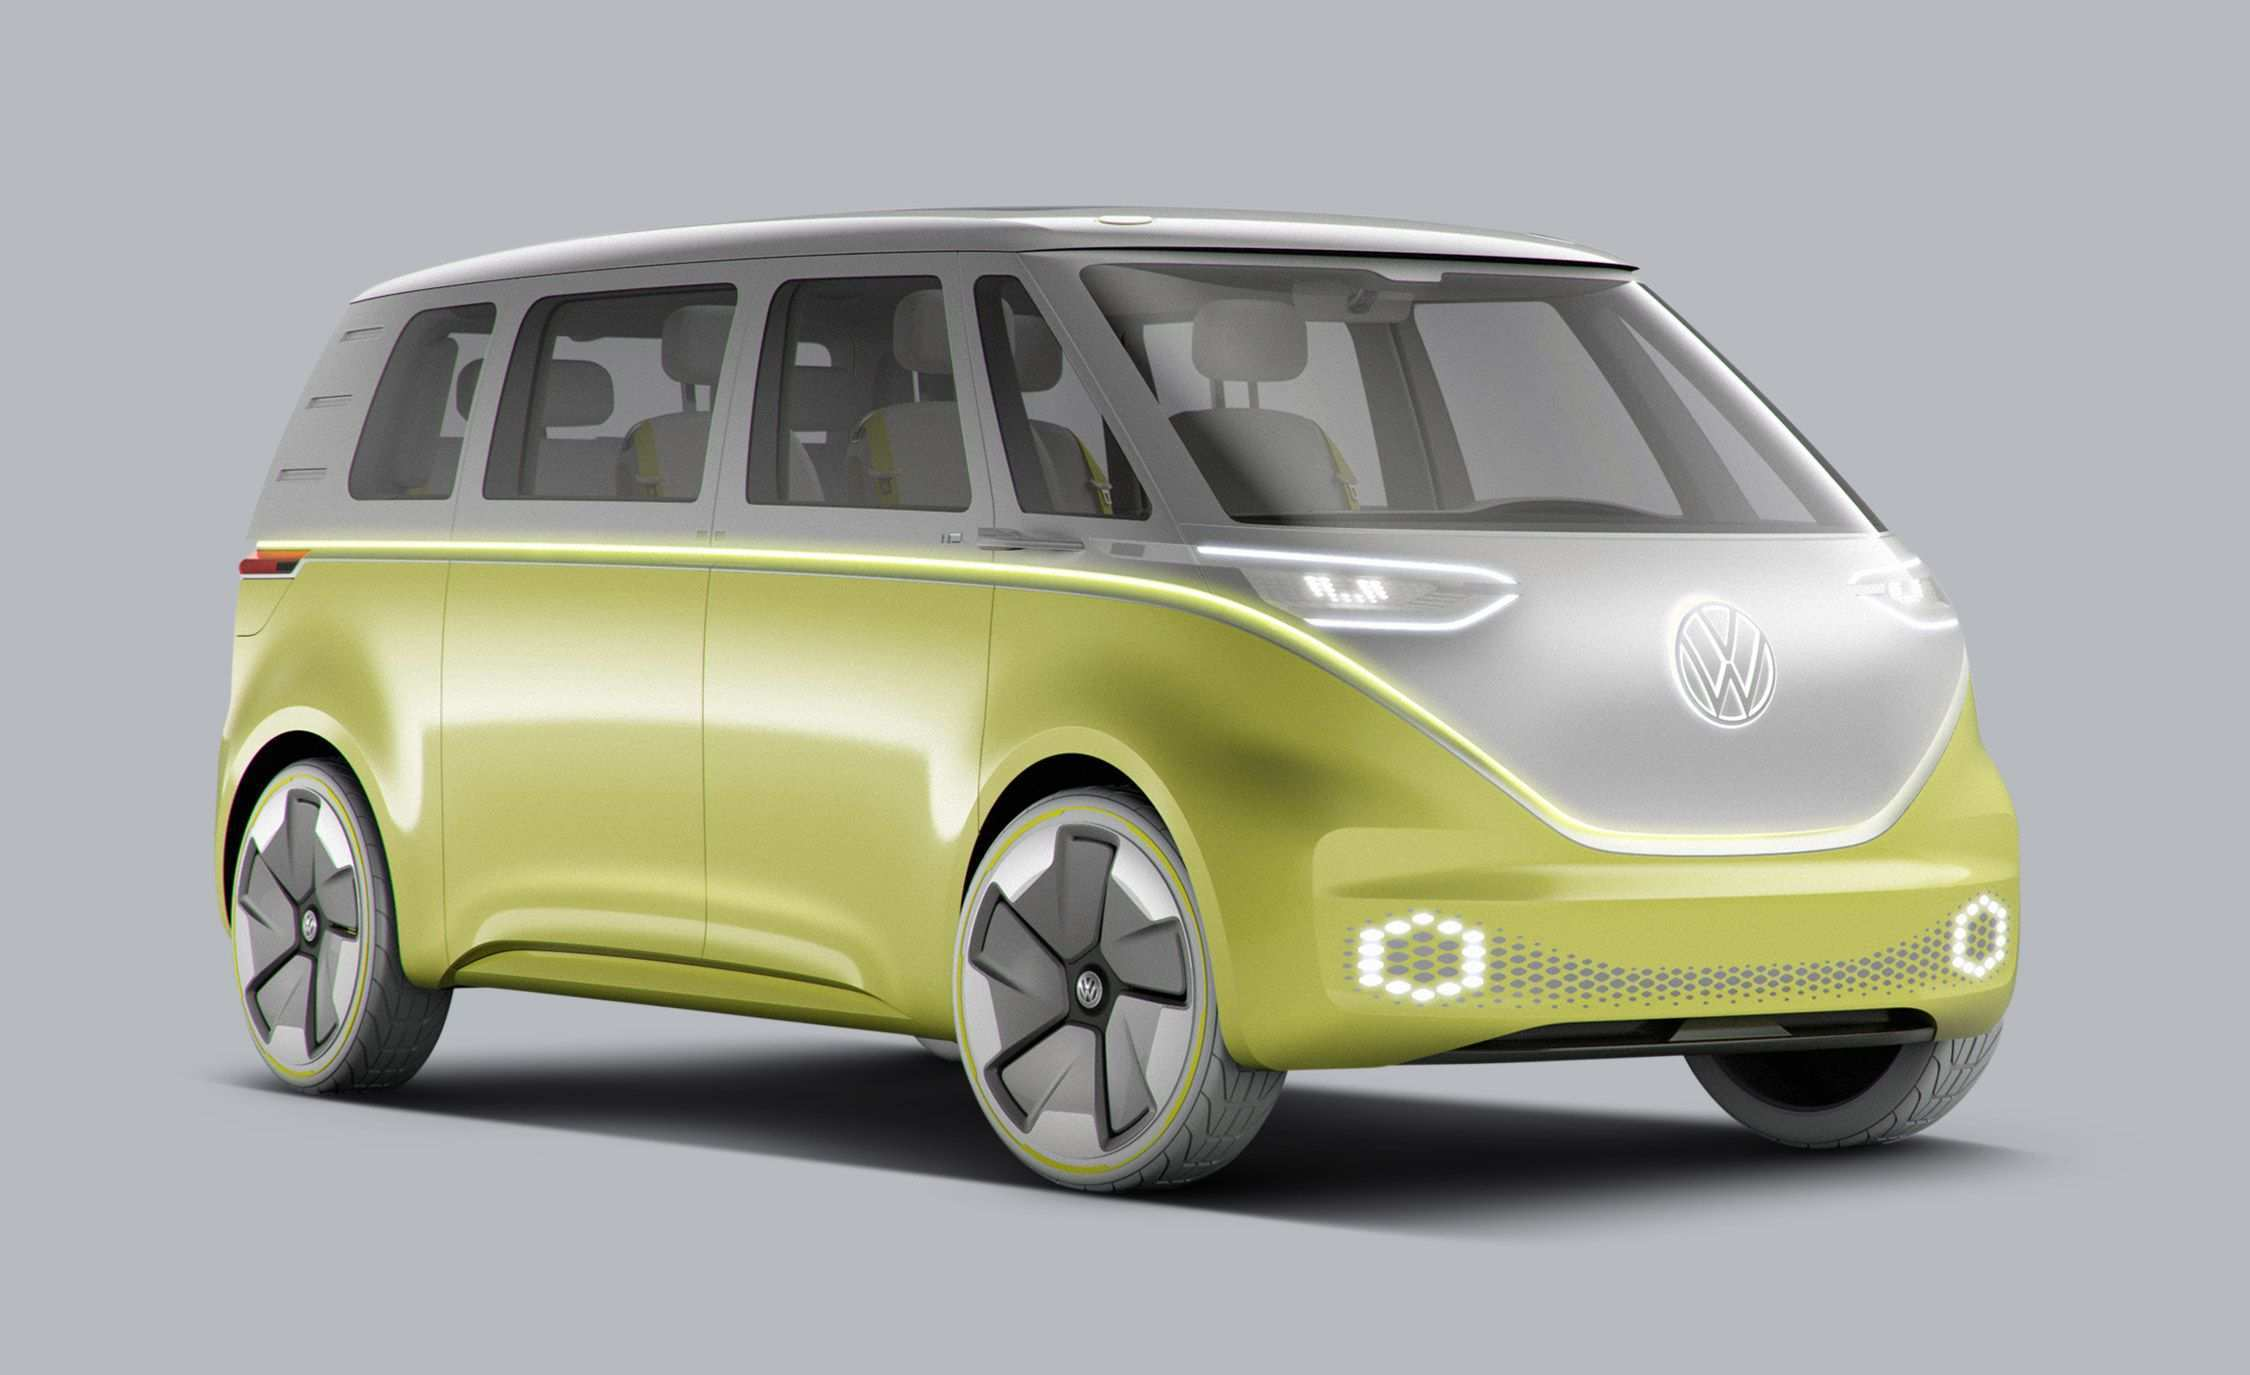 22 Concept of Vw Van 2019 Prices by Vw Van 2019